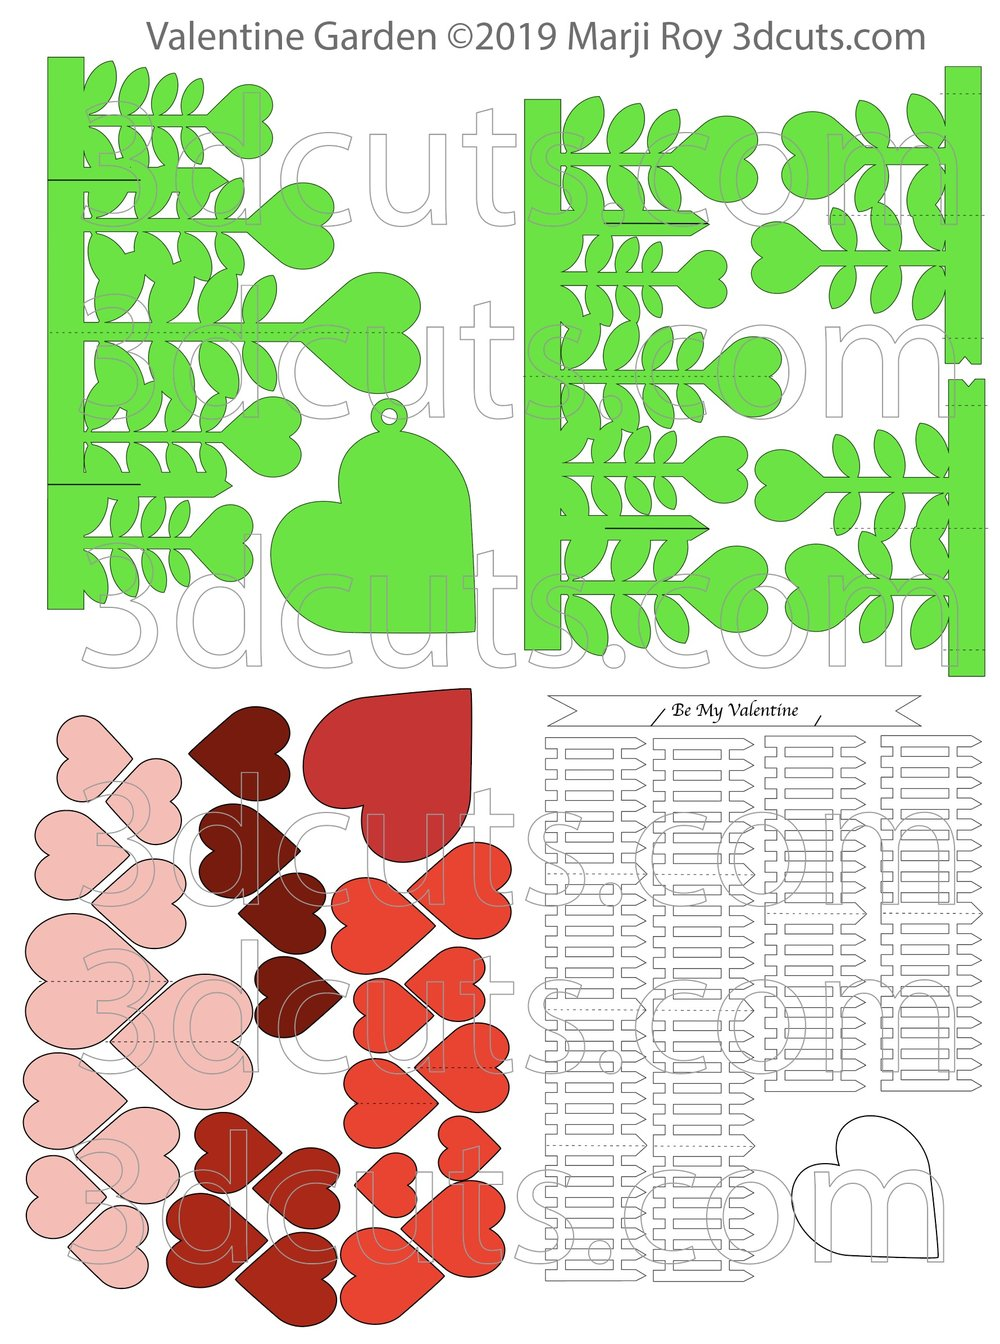 Valentine Garden, ©3DCuts.com, Marji Roy, 3D cutting files in .svg, .dxf, and .pdf formats for use with Silhouette, Cricut and other cutting machines, paper crafting files